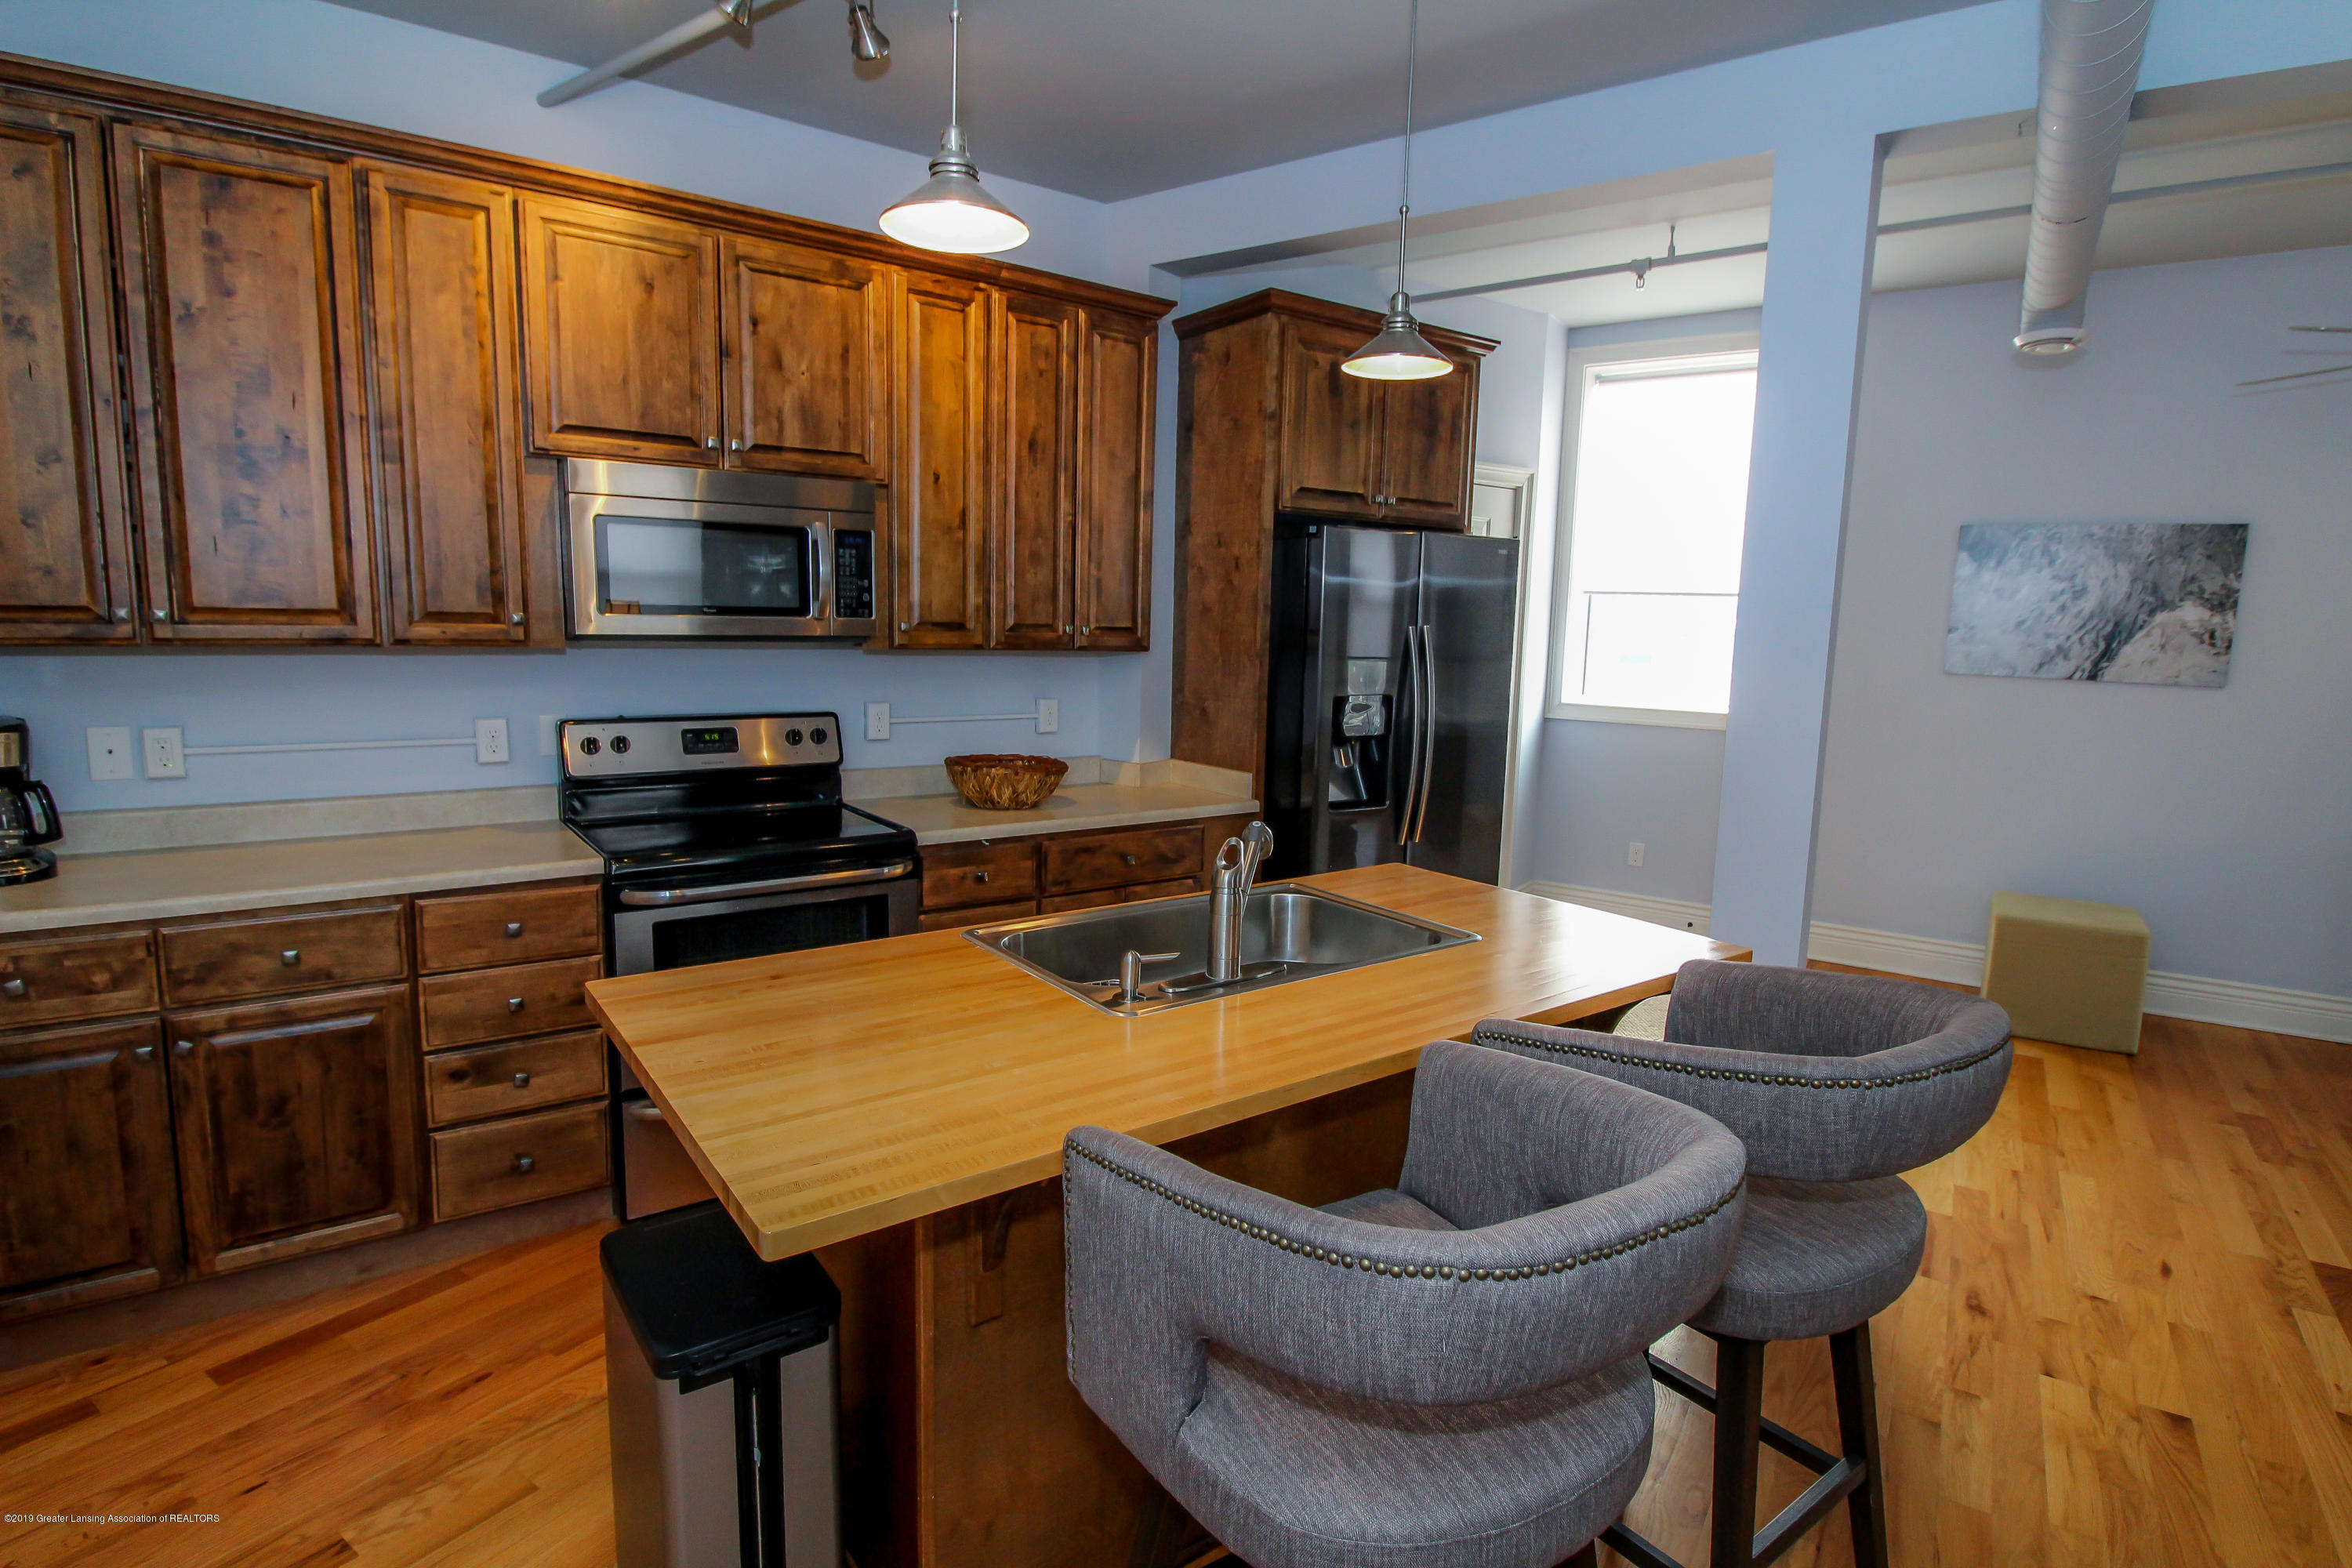 109 E Grand River Ave 4 - kitchen - 10